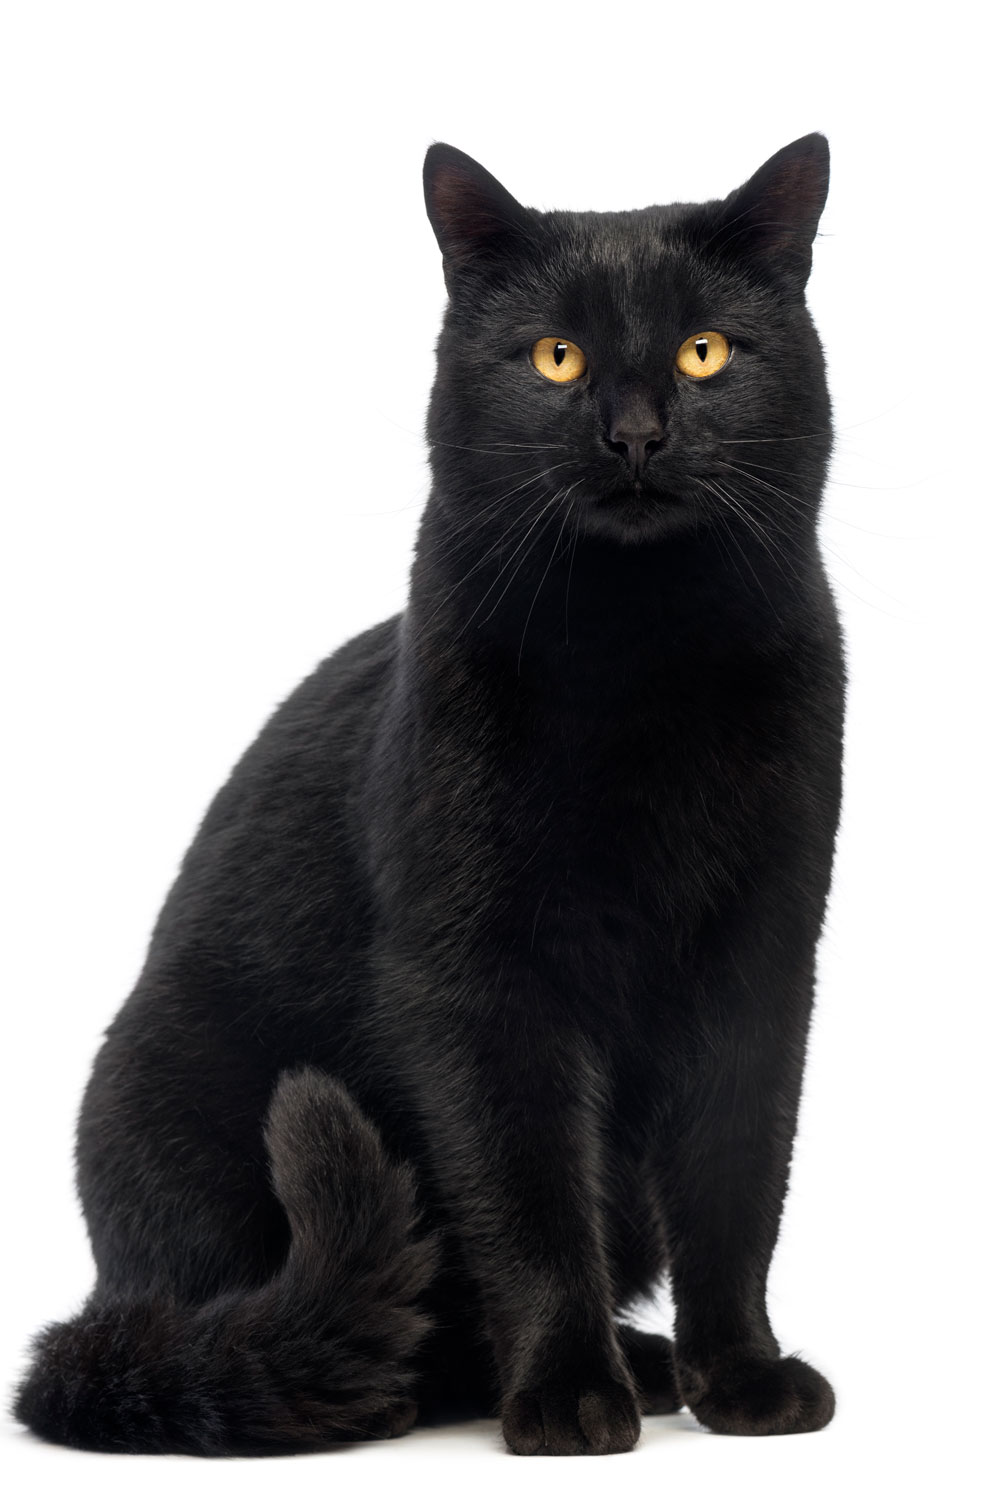 A black cat staring at the camera while sitting on a white background